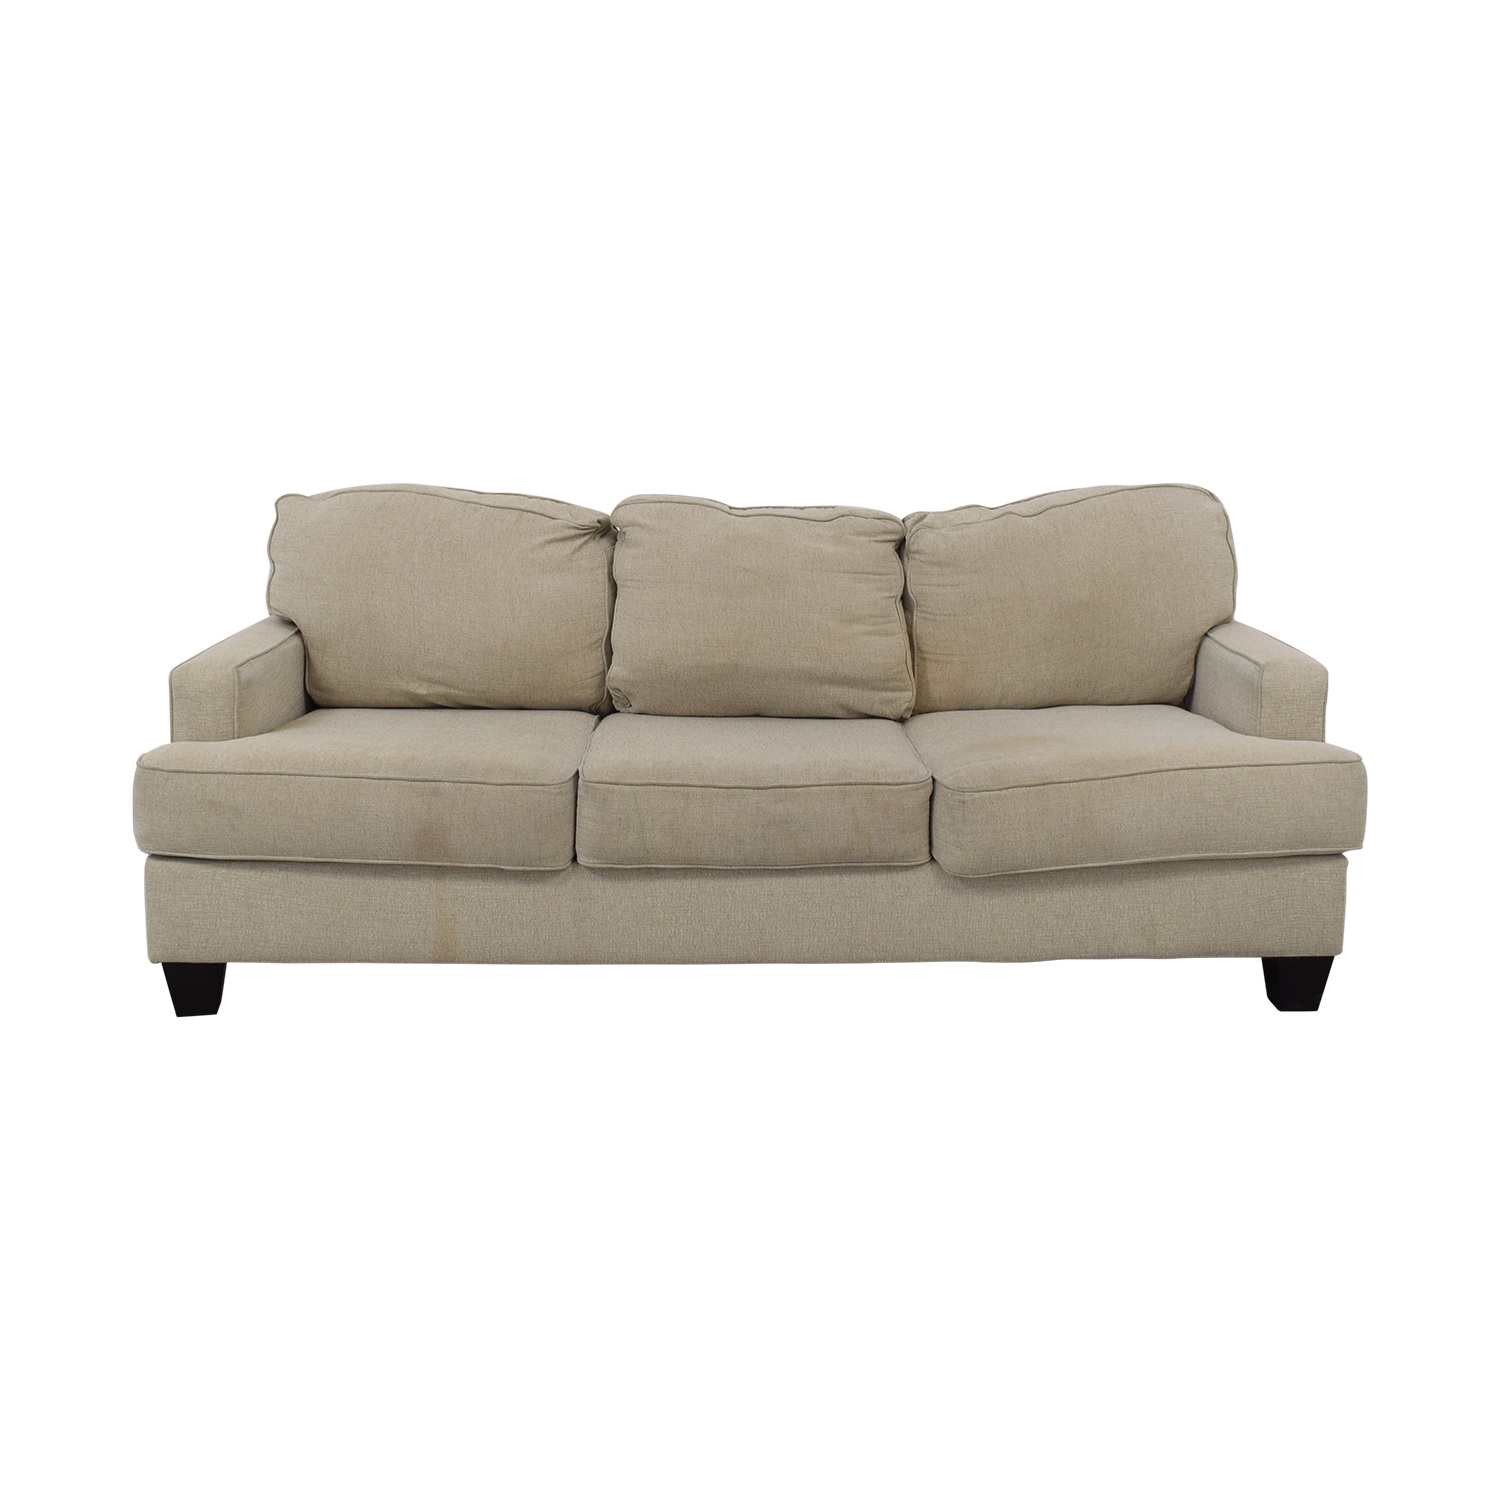 Ashley Furniture Ashley Furniture Sofa second hand